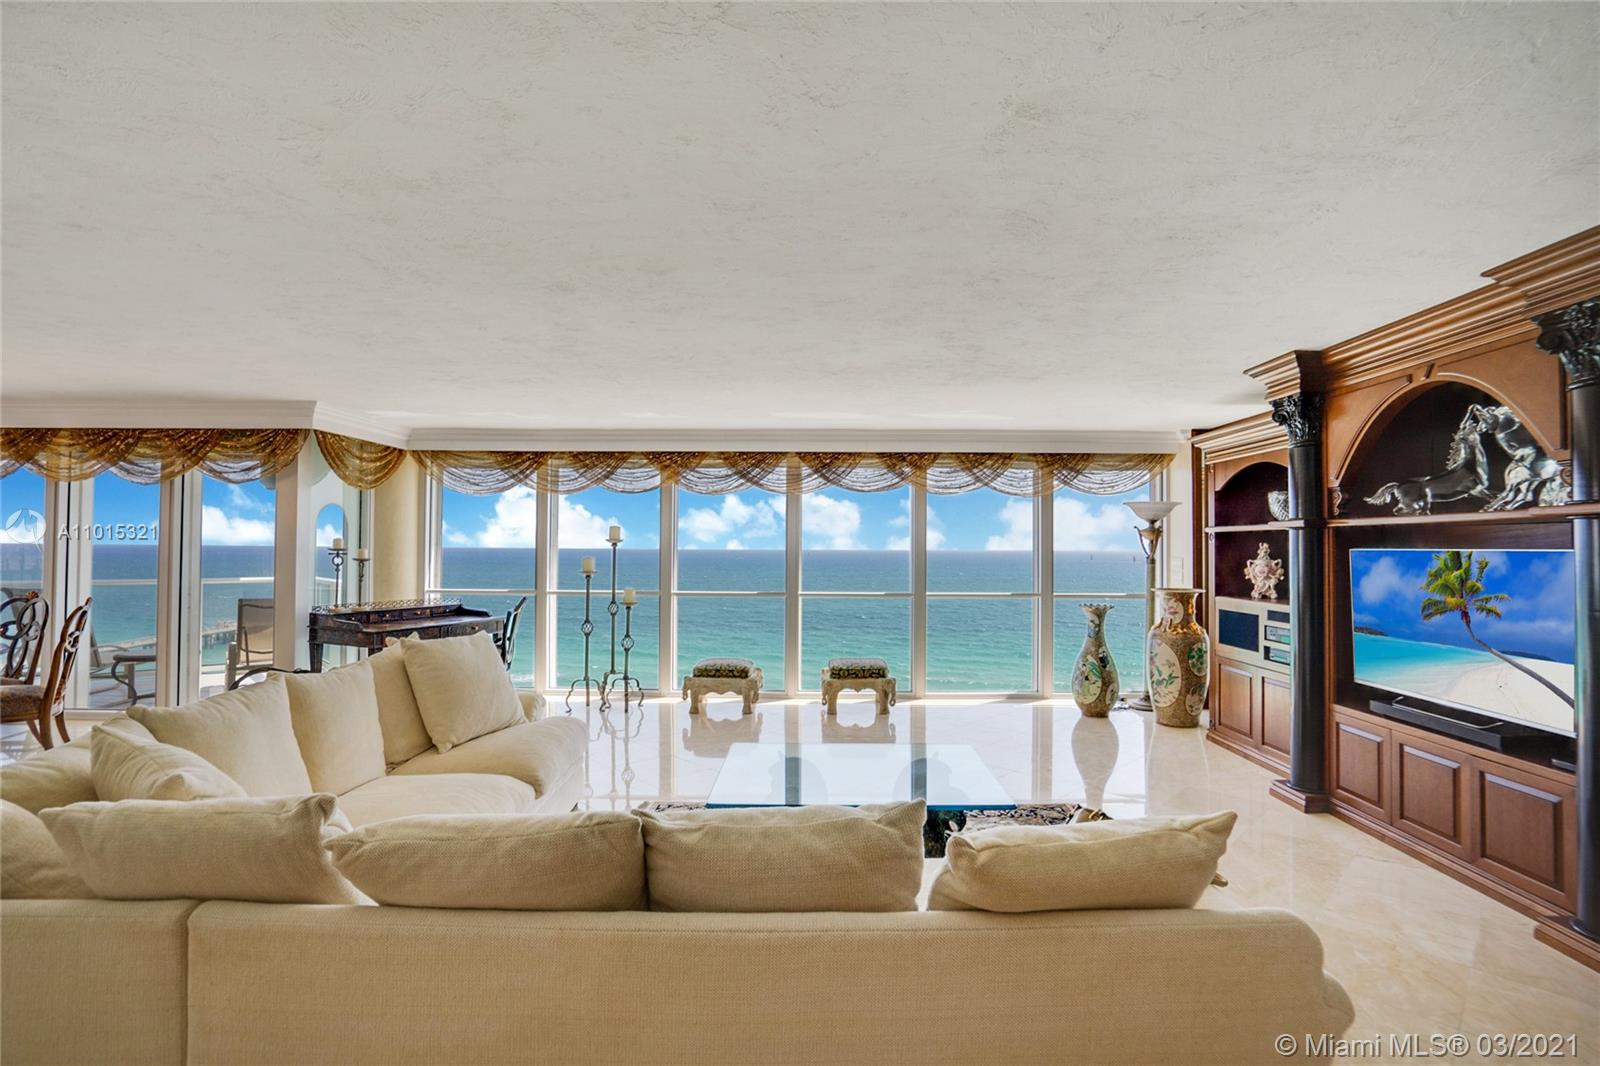 Sit back and enjoy the view from the living room.